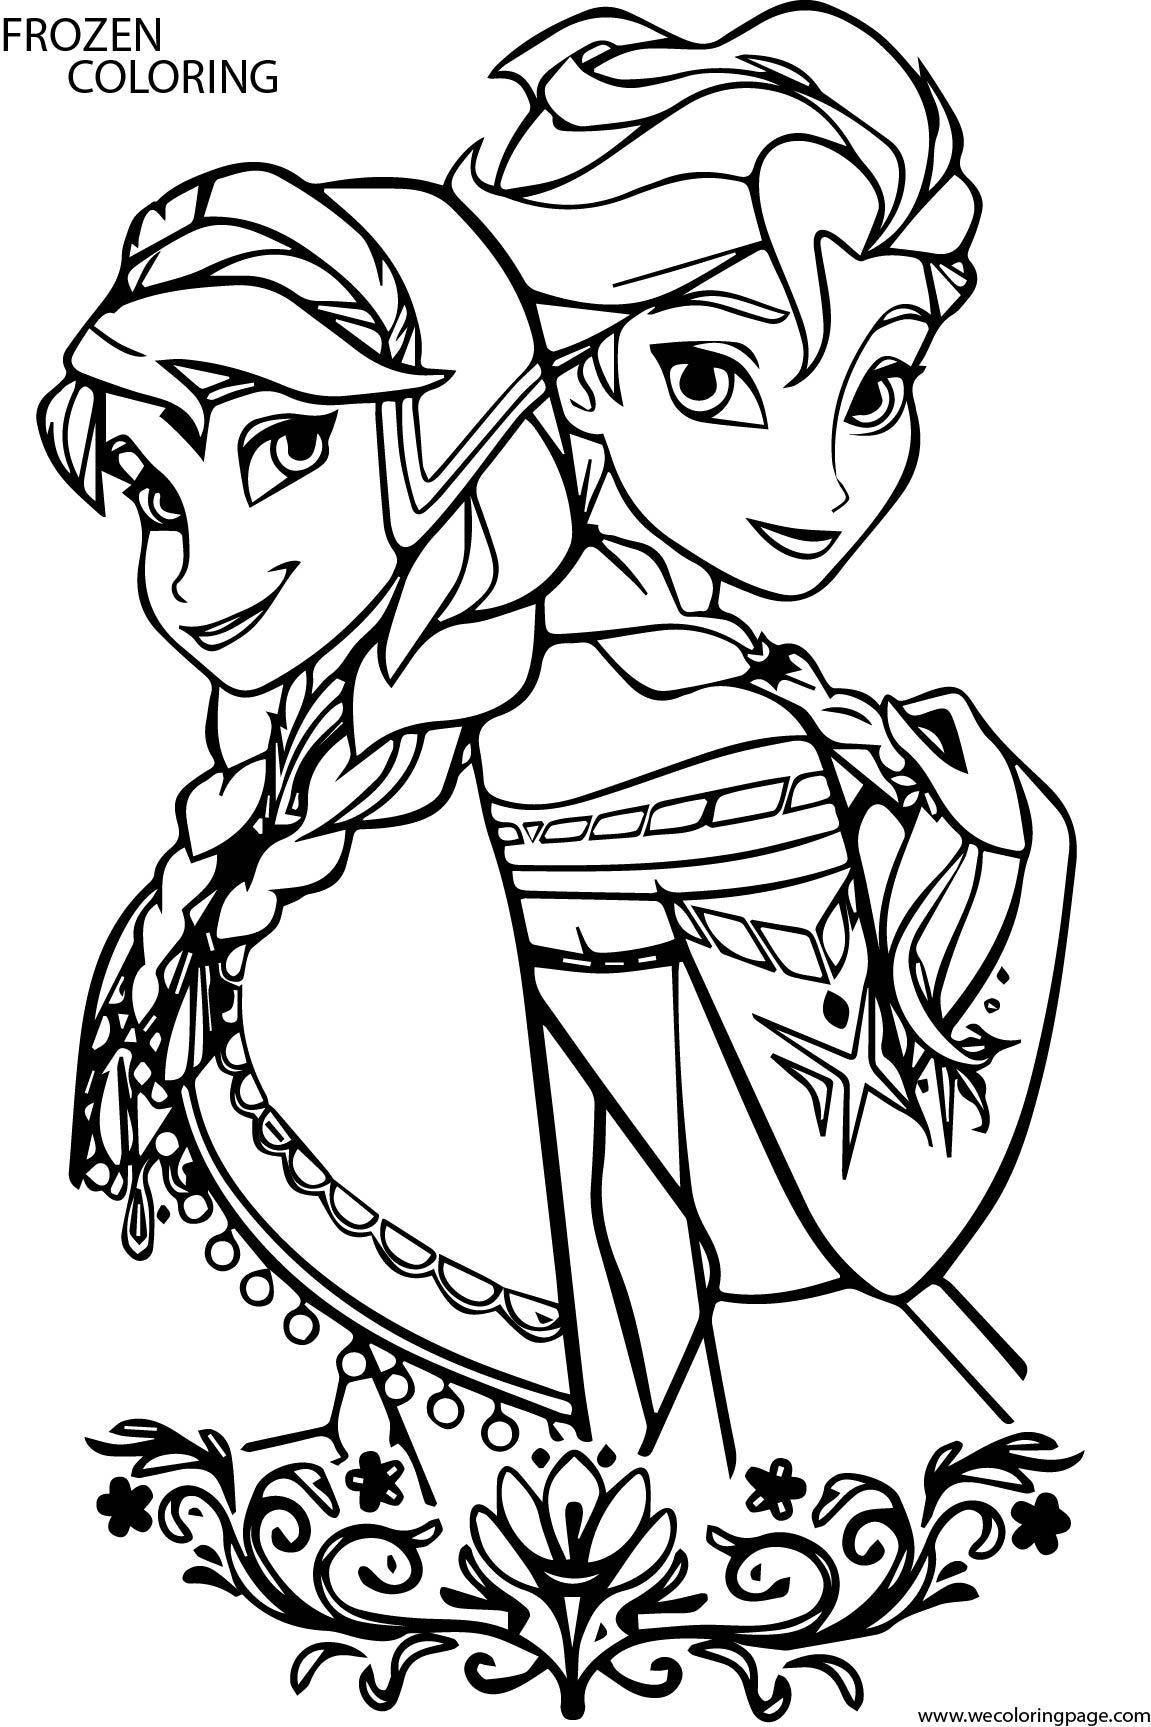 how to draw frozen characters frozen drawing at getdrawings free download characters frozen to draw how